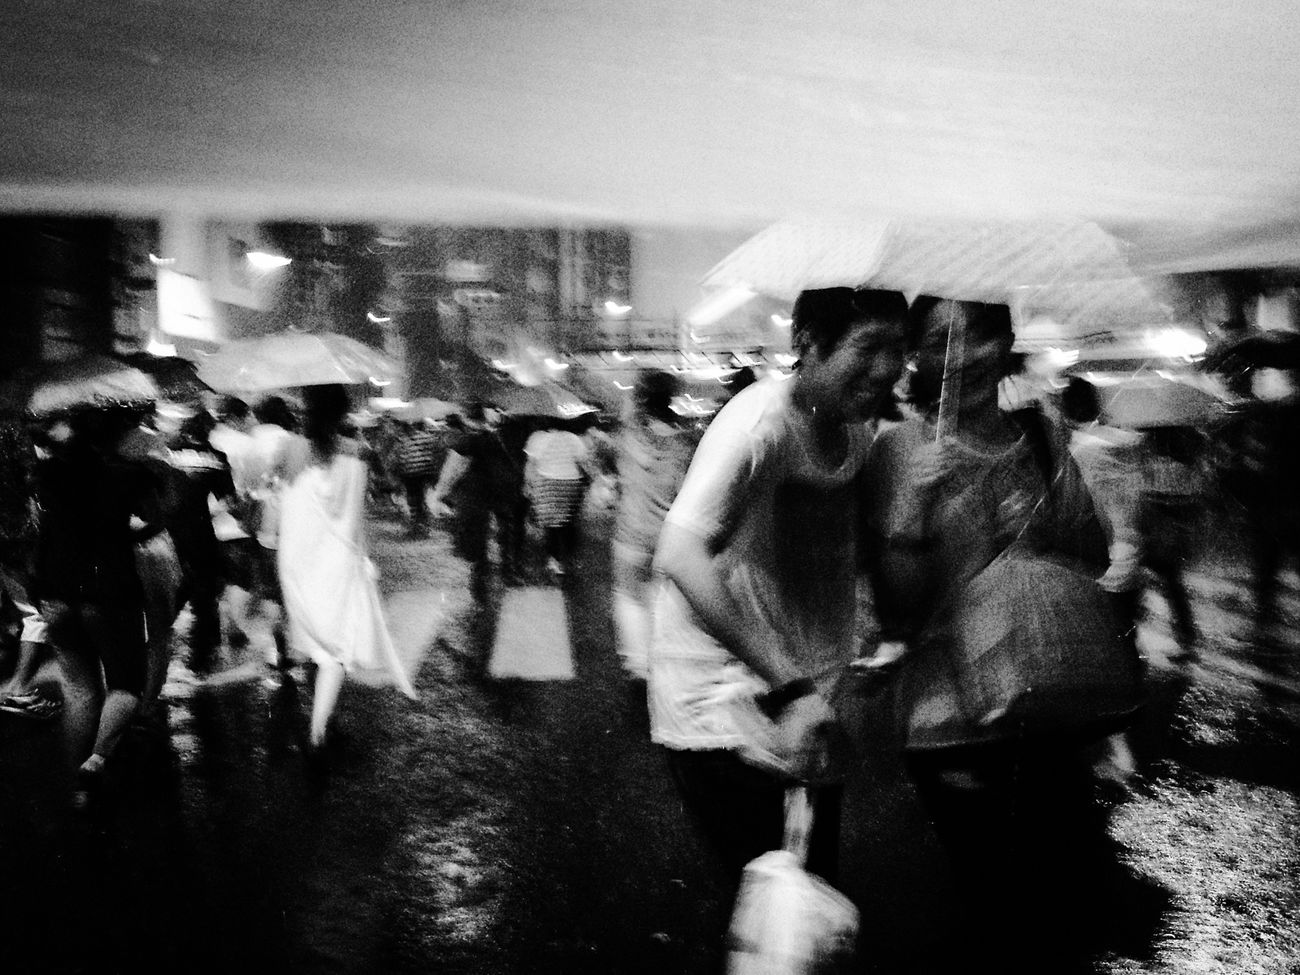 When the Rain suddenly interrupts a festival Rainy Days sStreet Photography The Street Photographer - 2014 EyeEm Awards RePicture Friendship